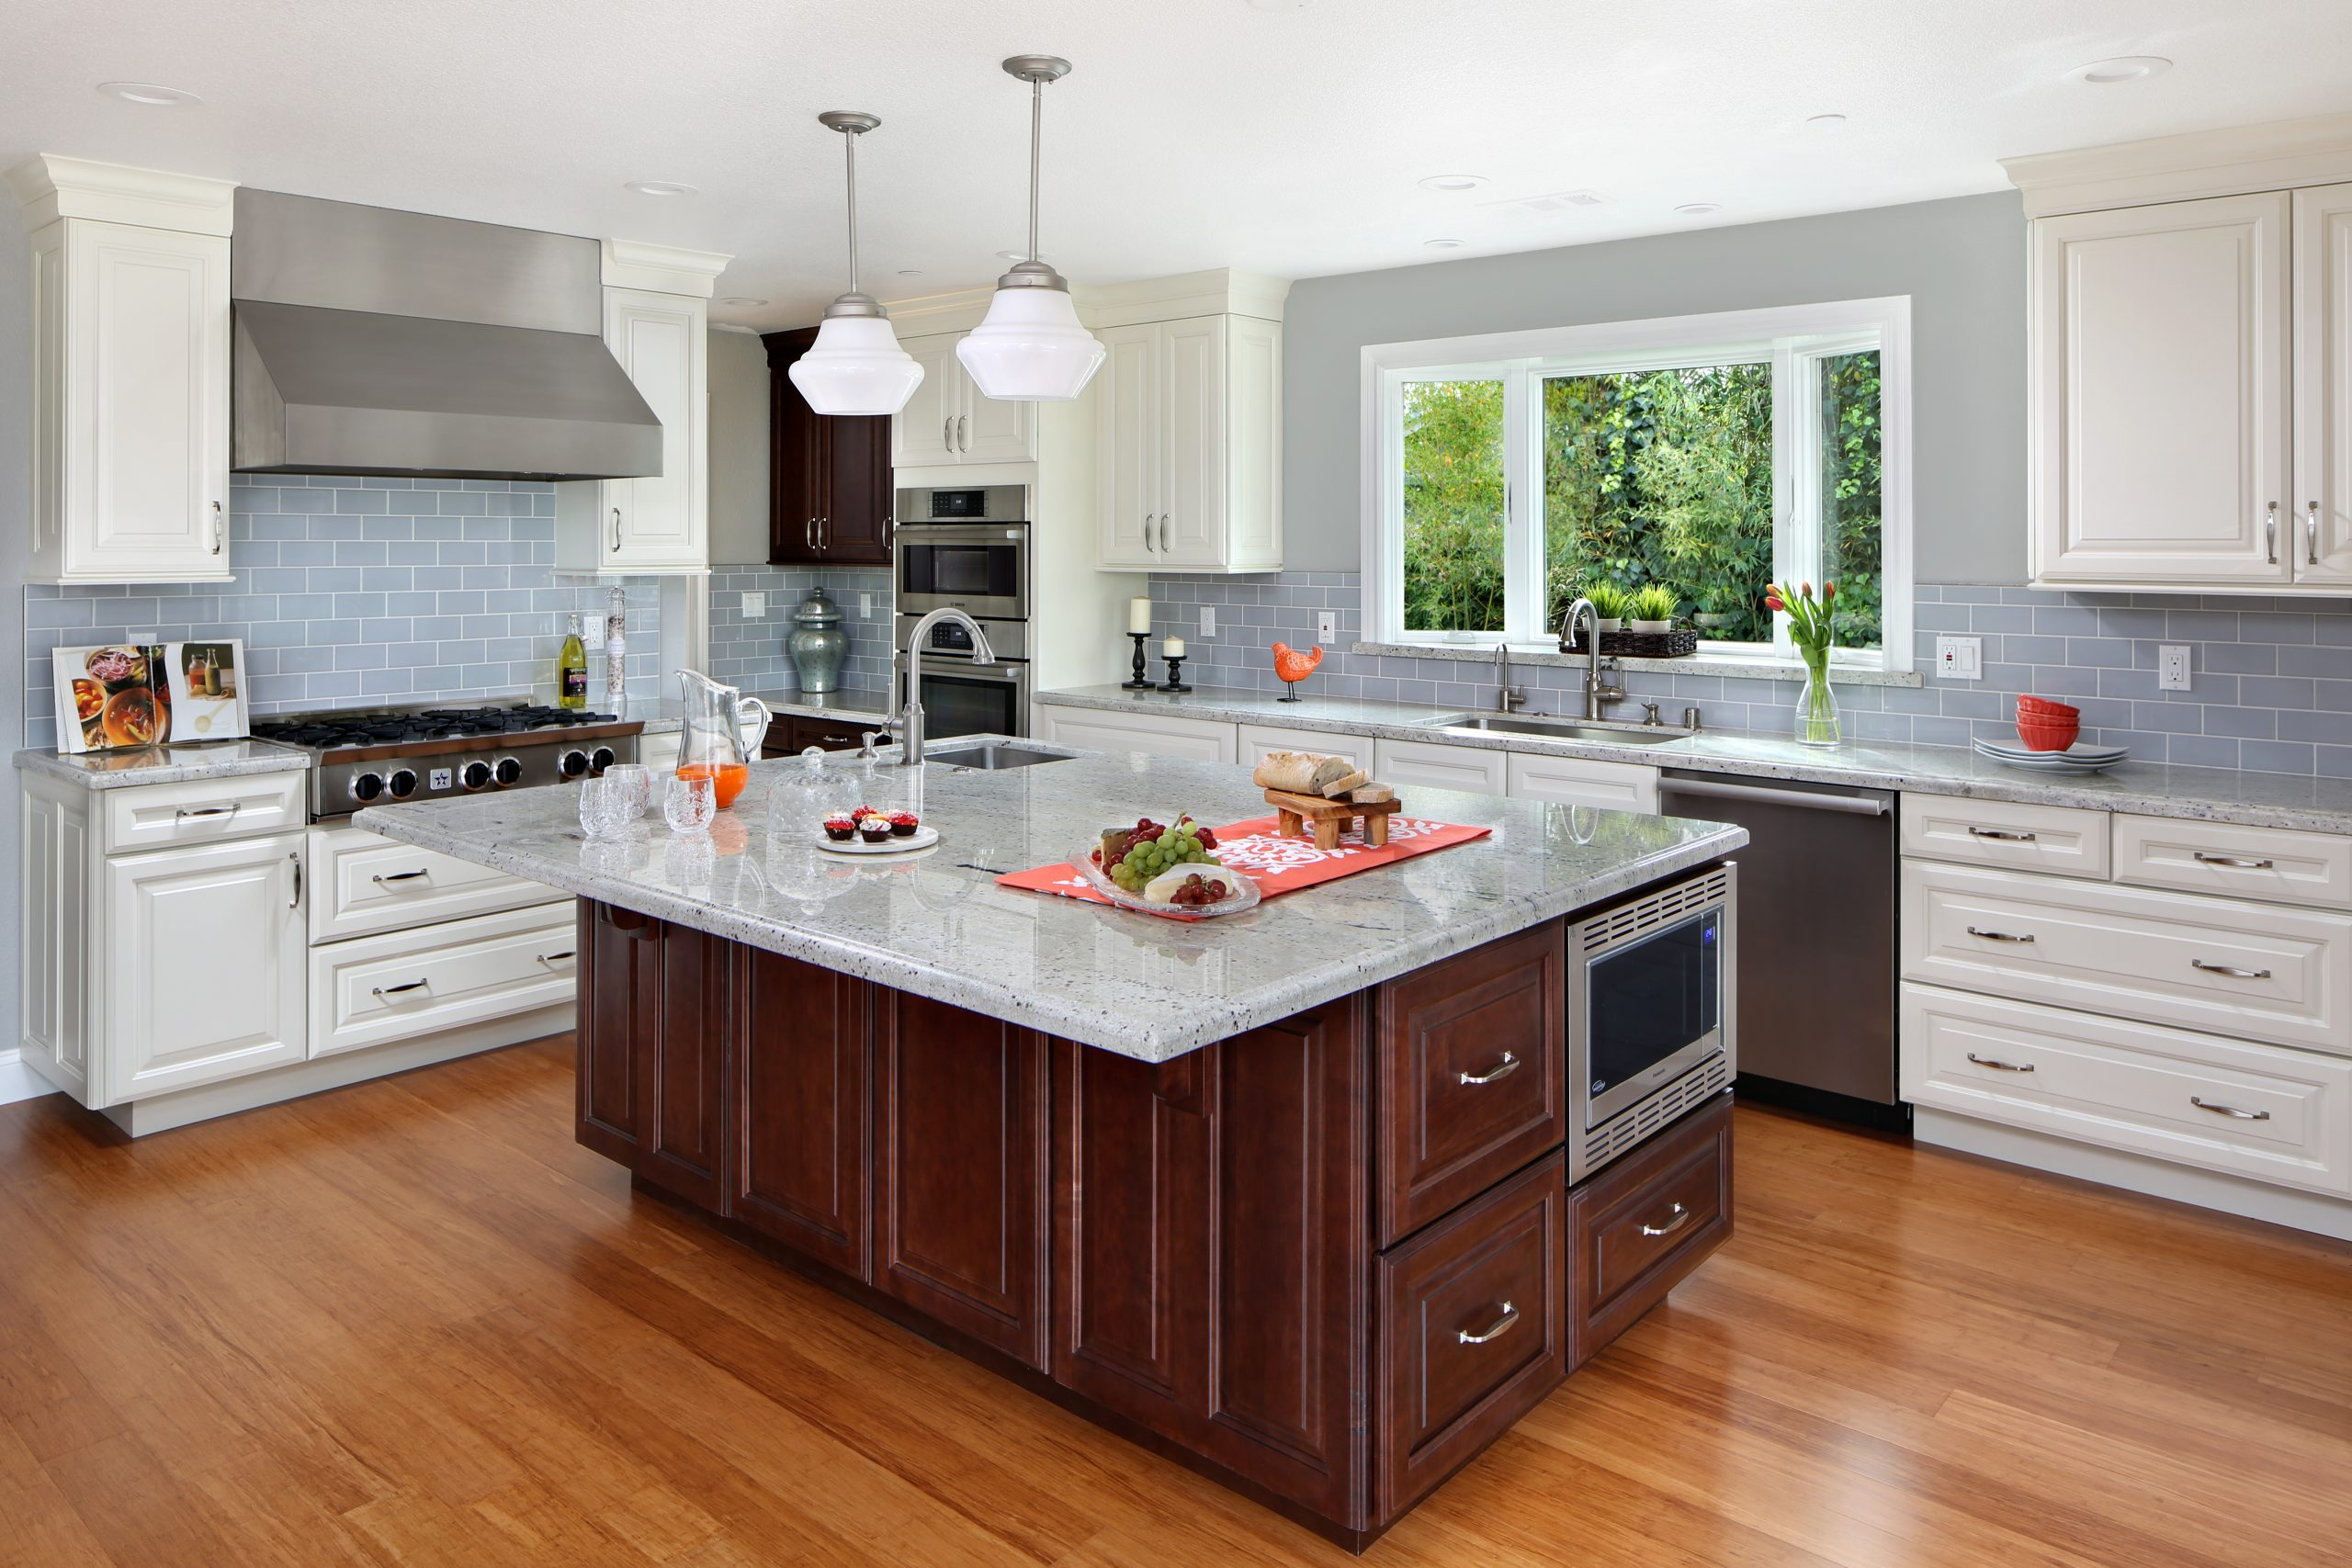 A kitchen with a large center island with granite counter tops.